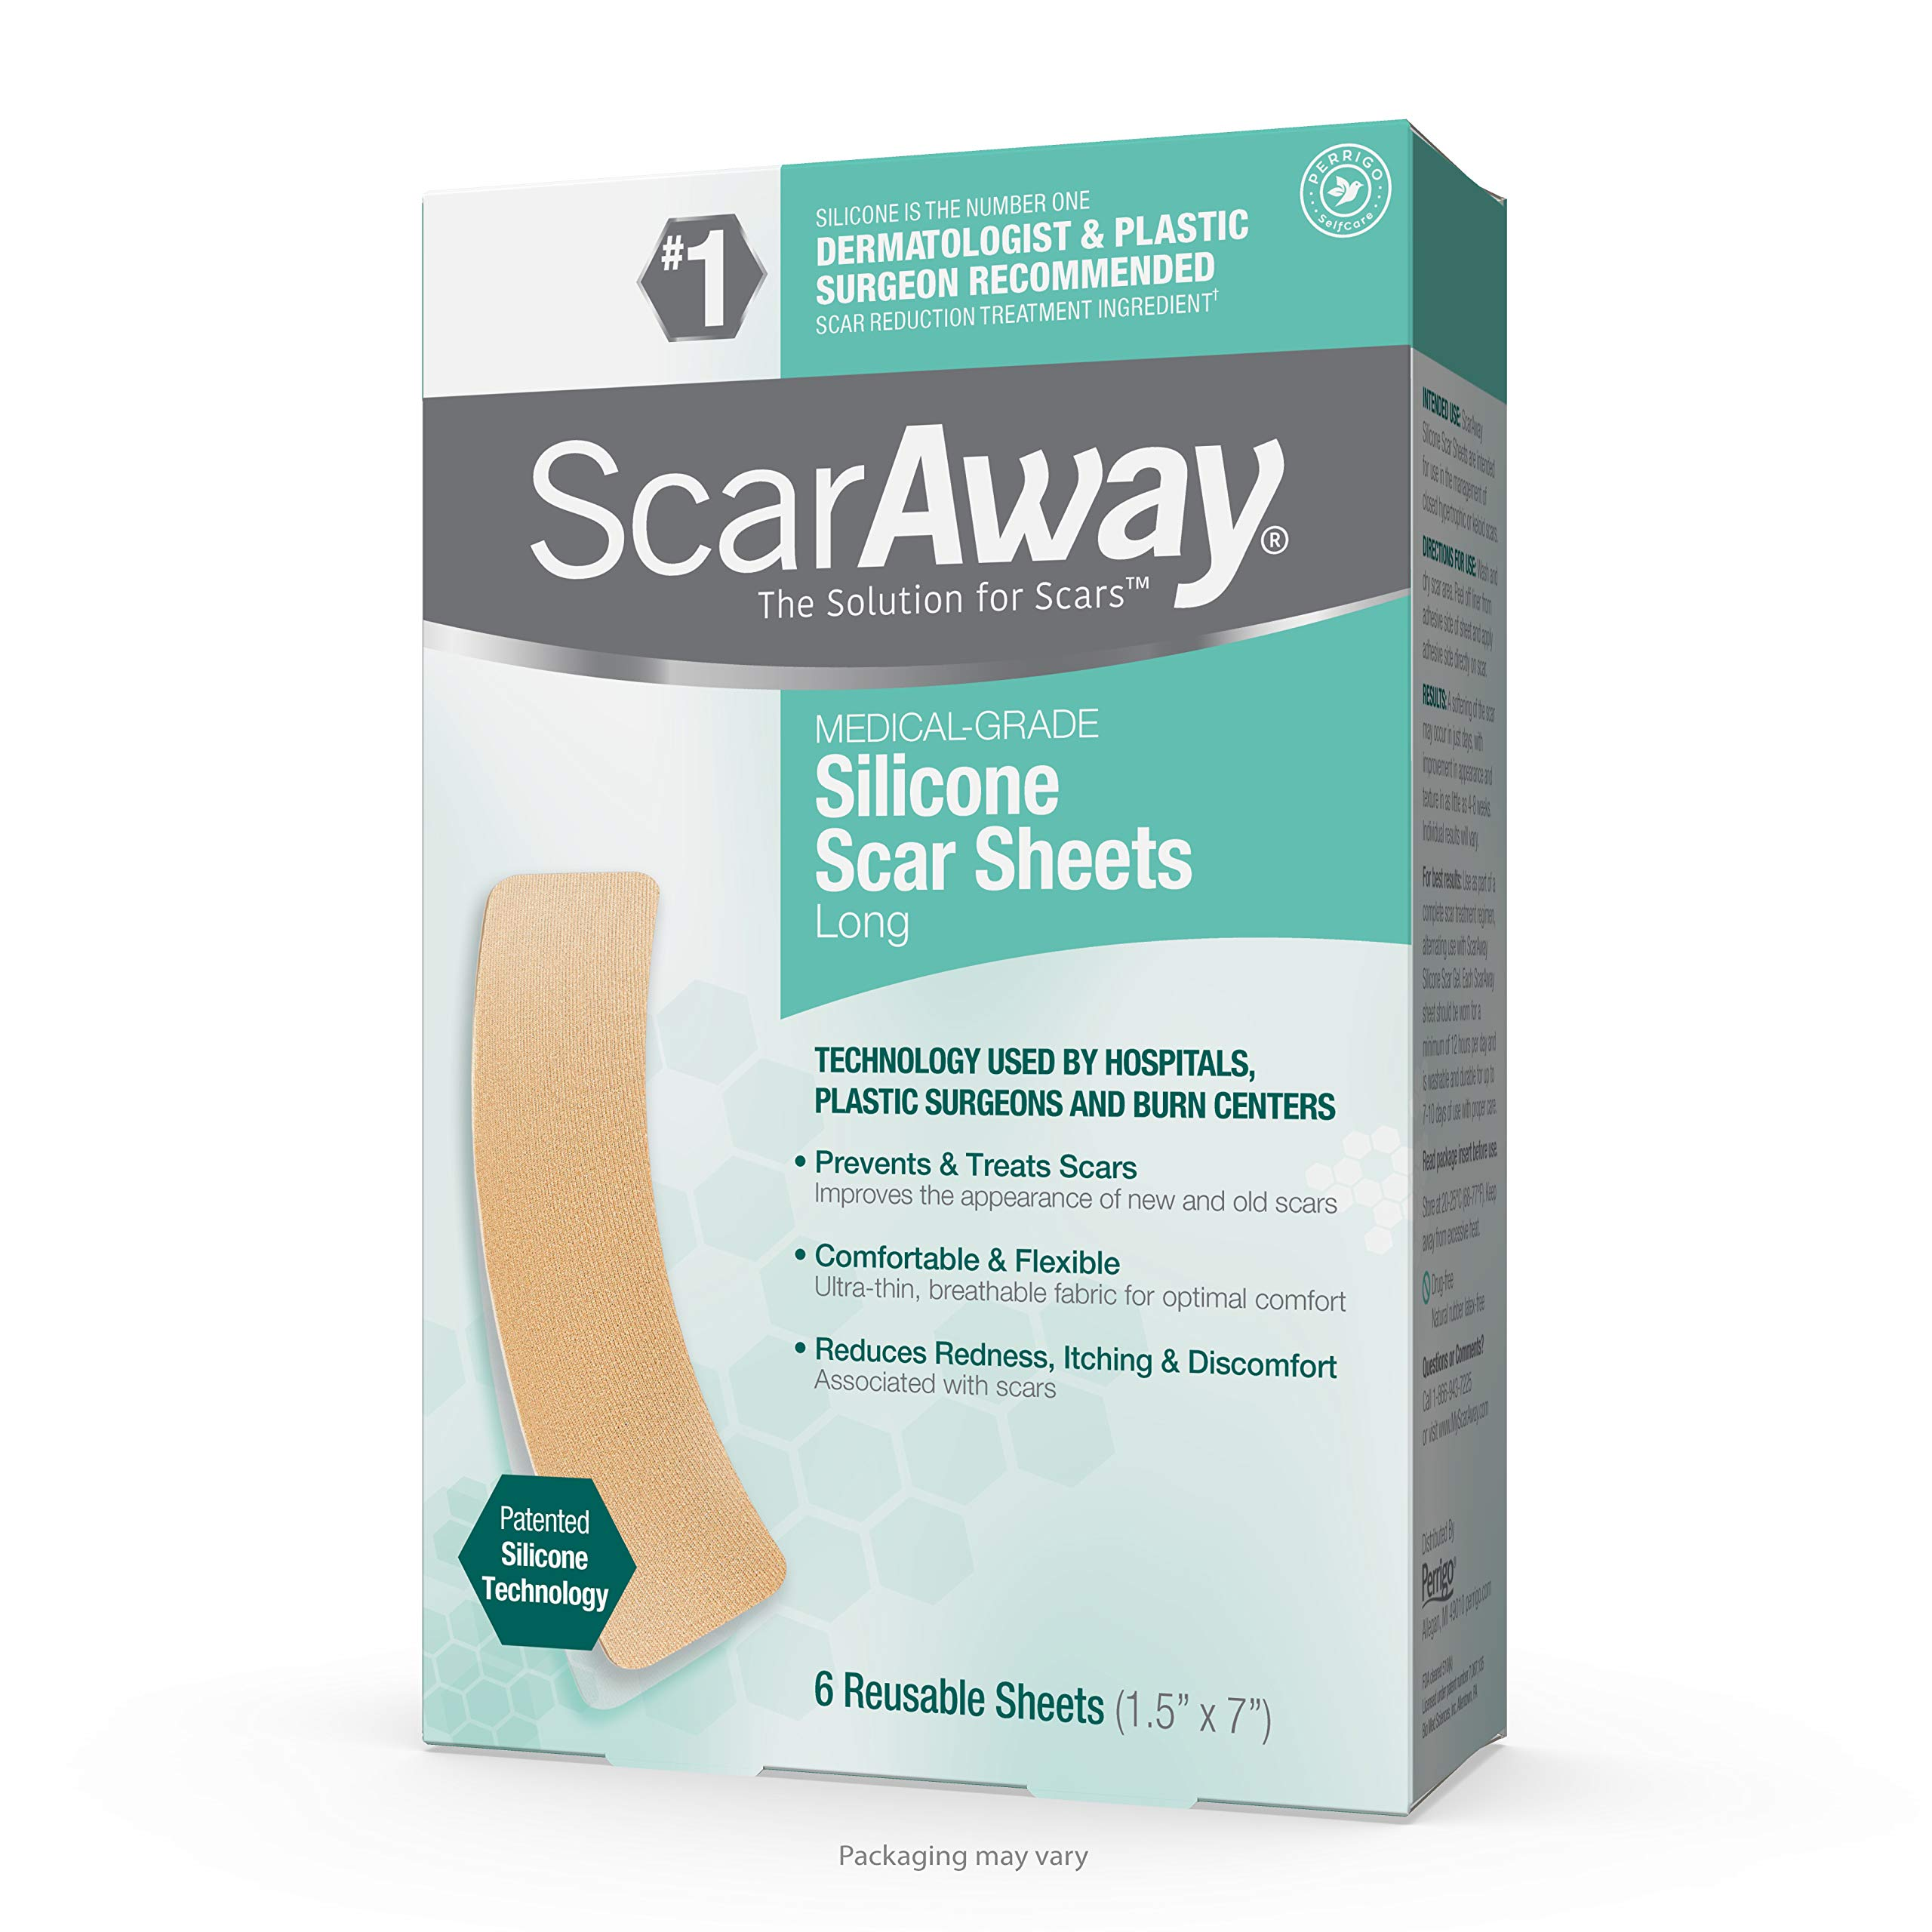 "ScarAway Advanced Skincare Long Silicone Scar Sheets for Hypertrophic Scars and Keloids Caused by Surgery, Injury, Burns, C-Section and More, 1.5"" x 7"", 6 Sheets"